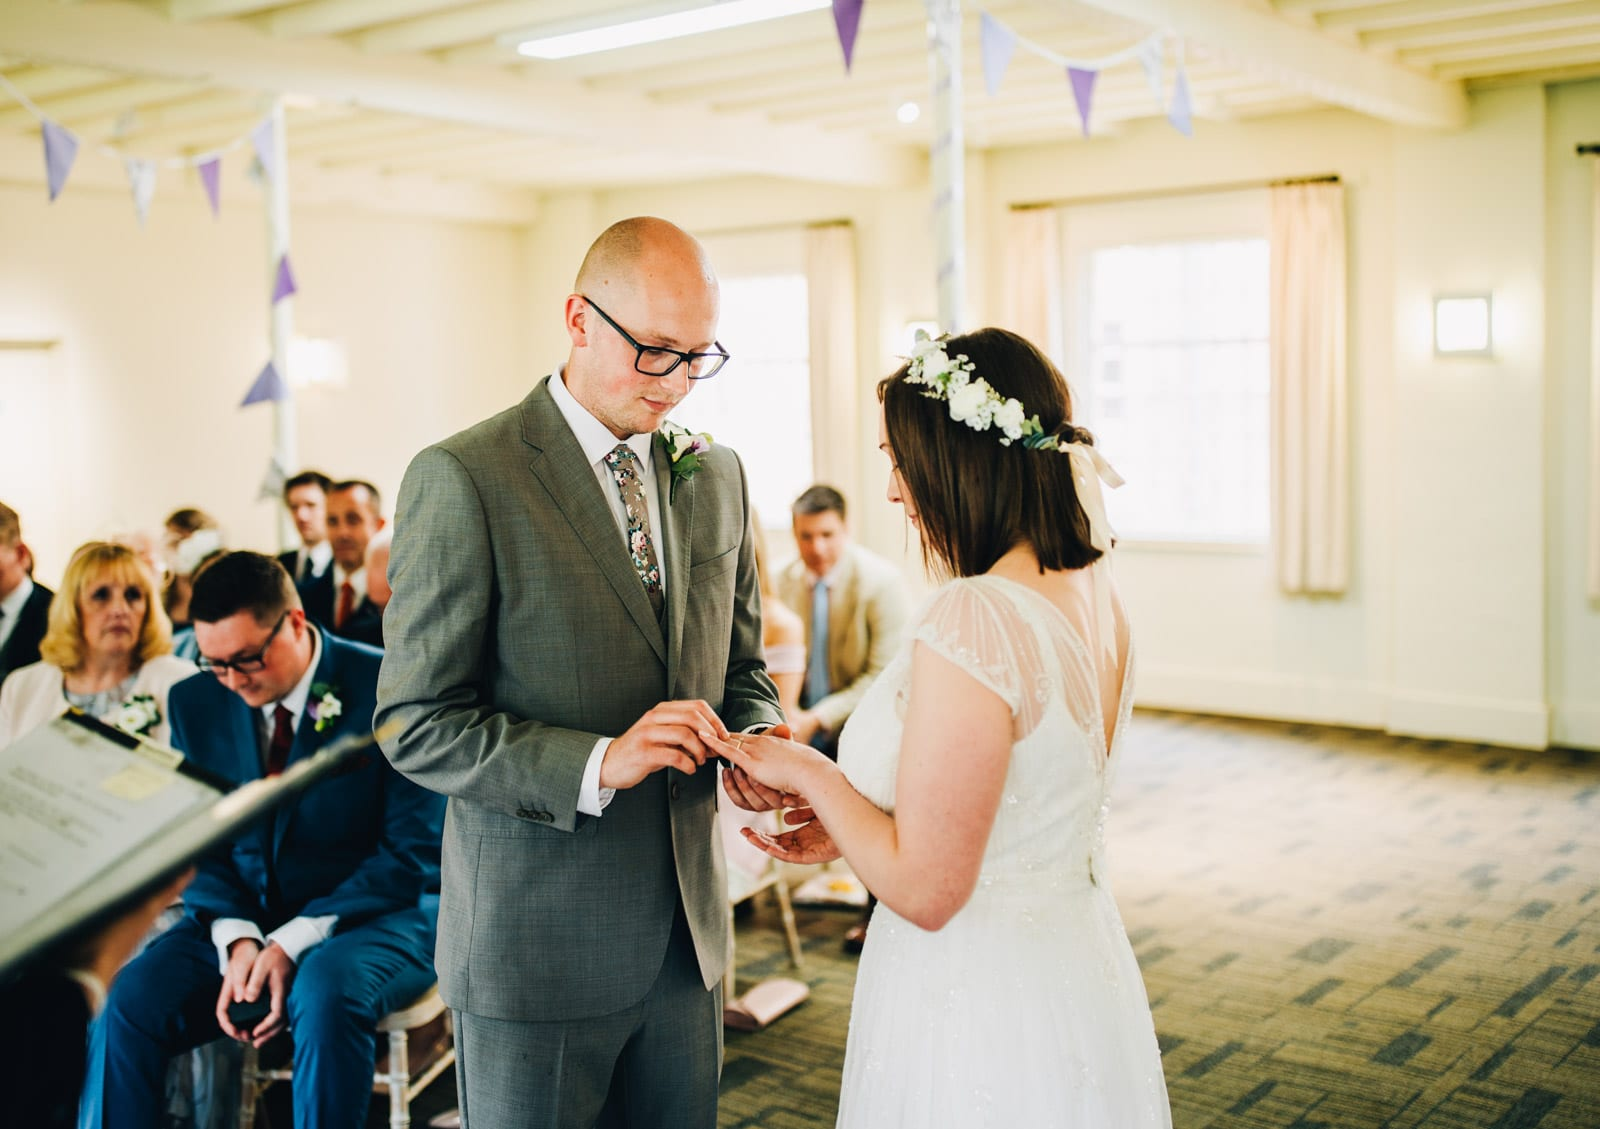 Wedding ceremony at Quarry Bank Mill Cheshire